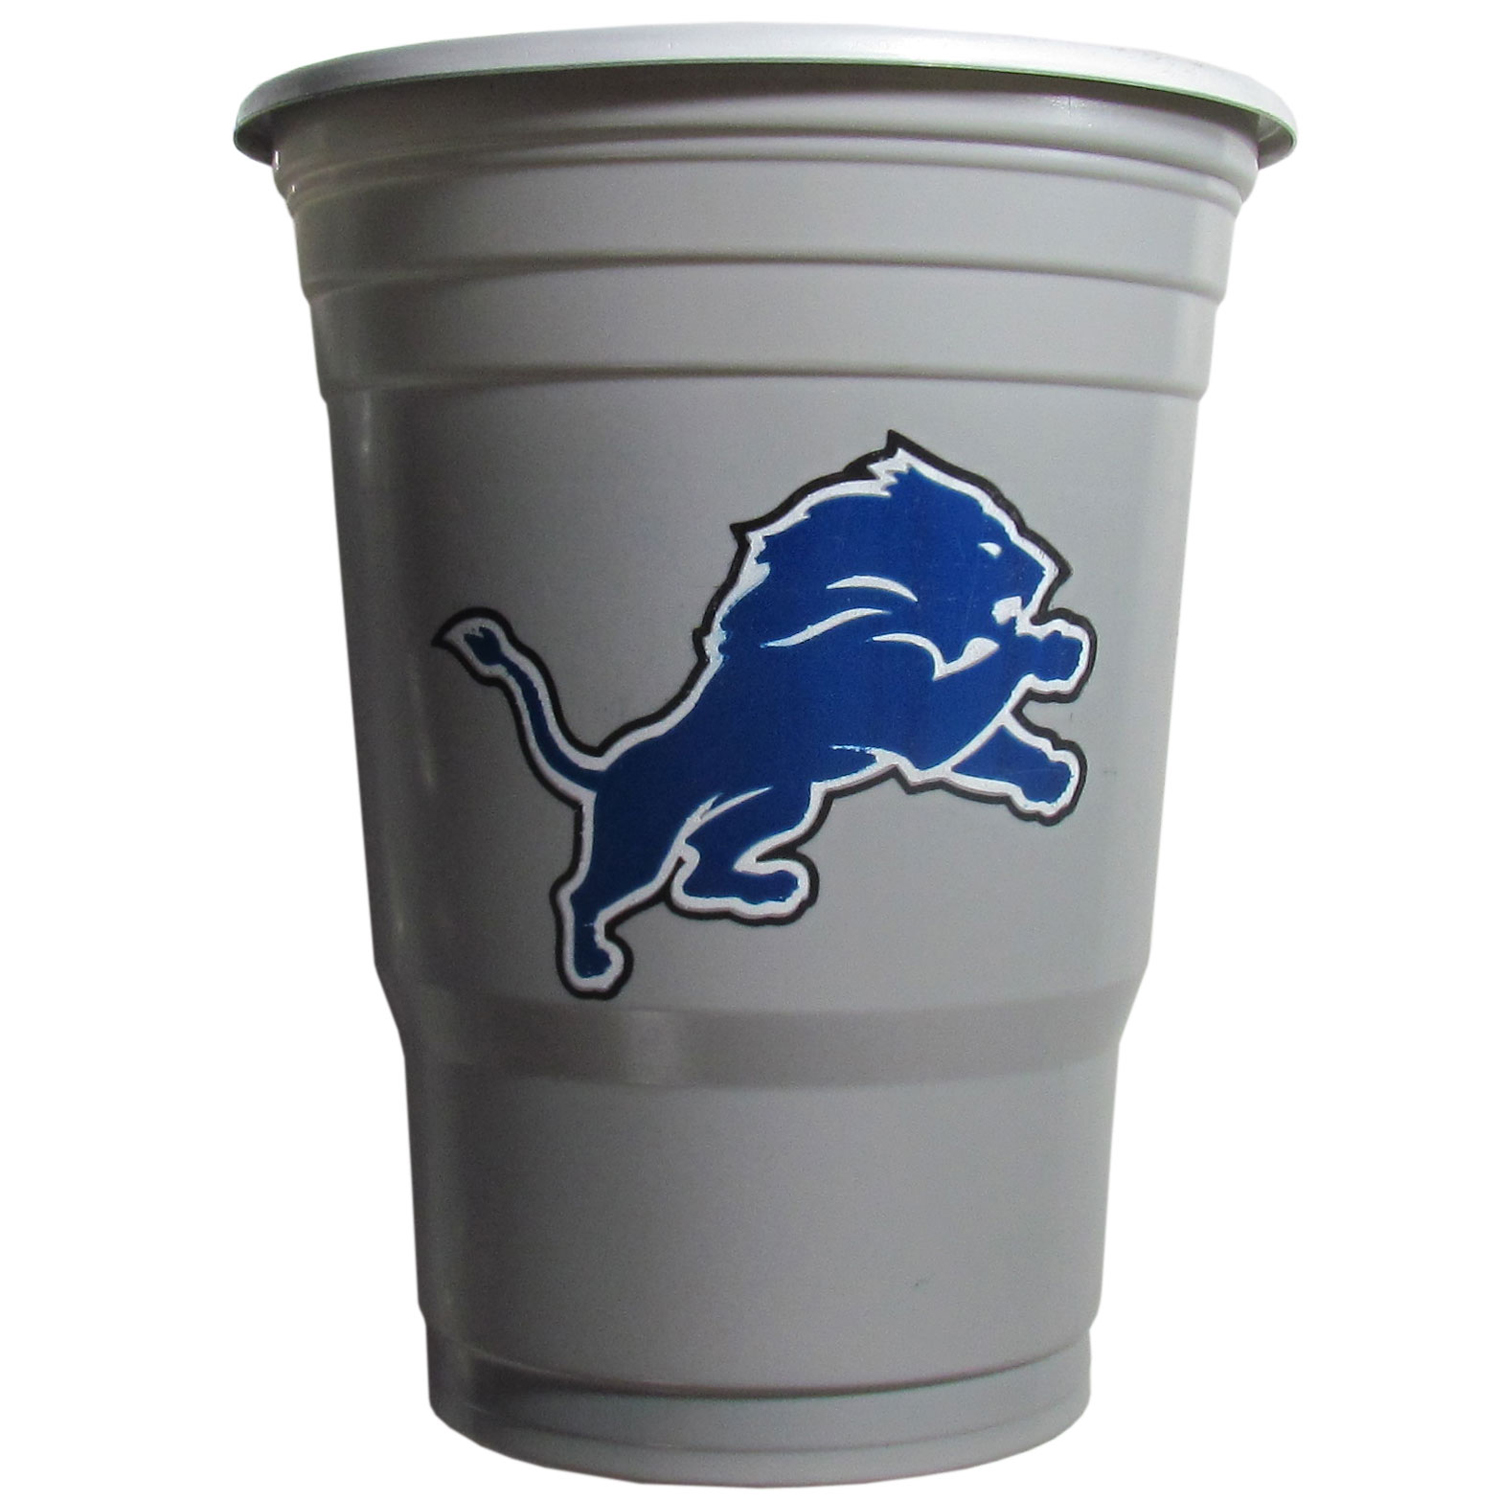 Detroit Lions Plastic Game Day Cups 2 sleeves of 18 (36 Cups) - Our 18 ounce game day cups are what every tailgating or backyard events needs! The cups feature a big Detroit Lions logo so you can show off your team pride. The popular 18 ounce size is perfect for drinks or ping pong balls! 2 sleeves of 18 cups, 36 cups in total.